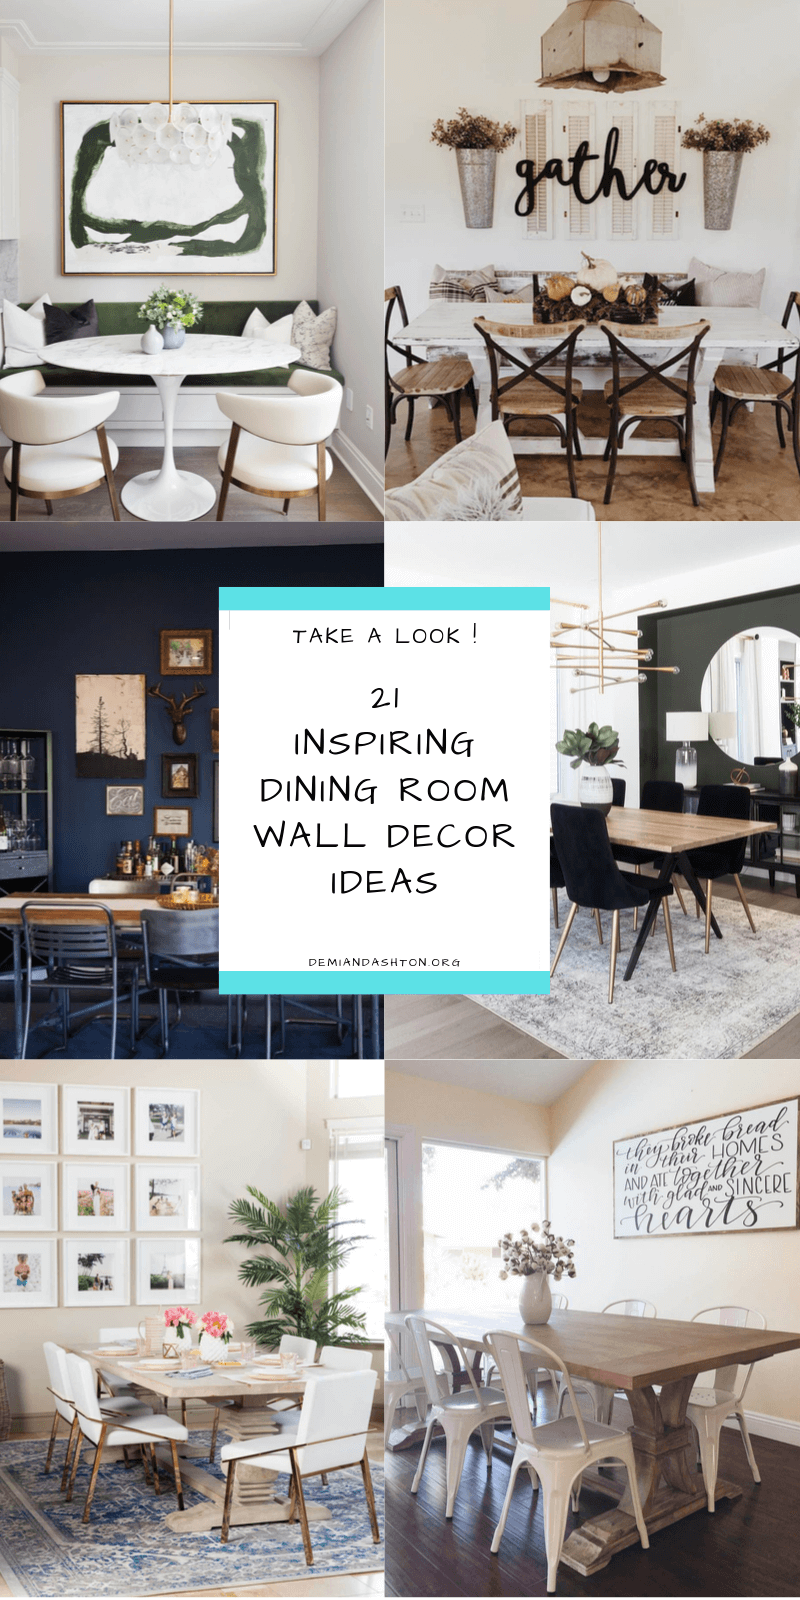 Inspiring Dining Room Wall Decor Ideas